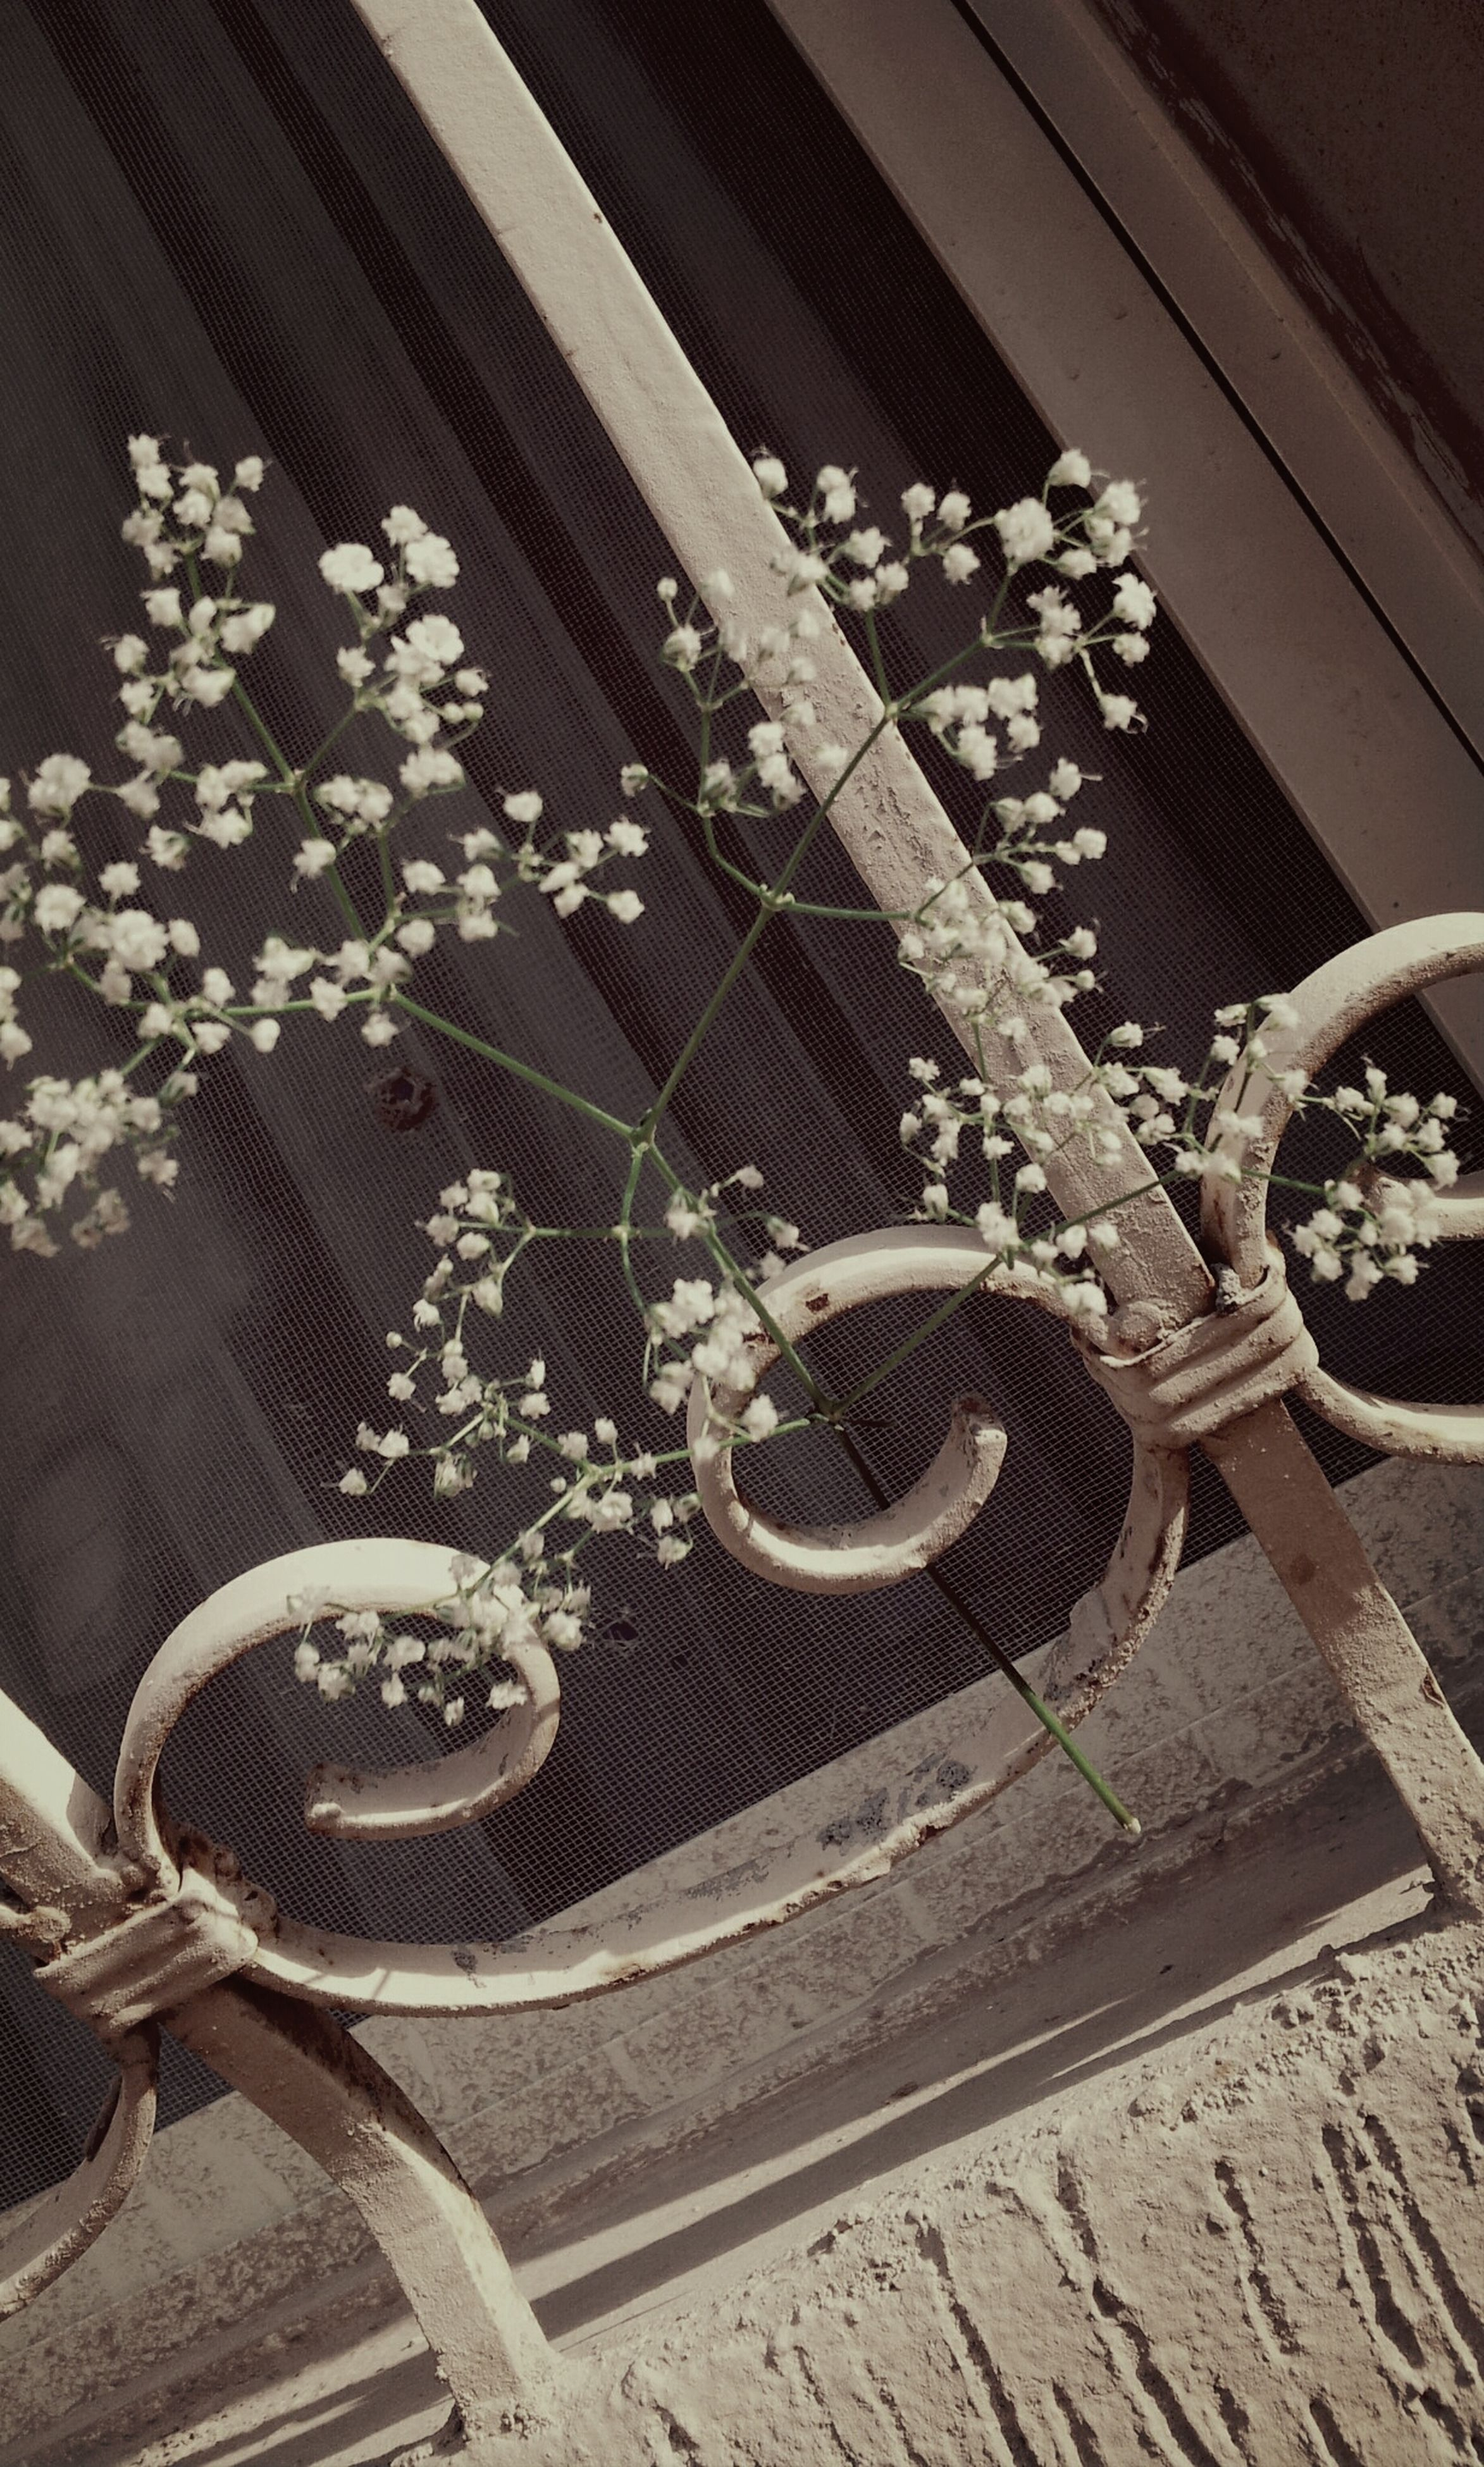 indoors, high angle view, metal, hanging, decoration, pattern, no people, bicycle, transportation, day, design, wall - building feature, flower, close-up, built structure, sunlight, land vehicle, railing, abundance